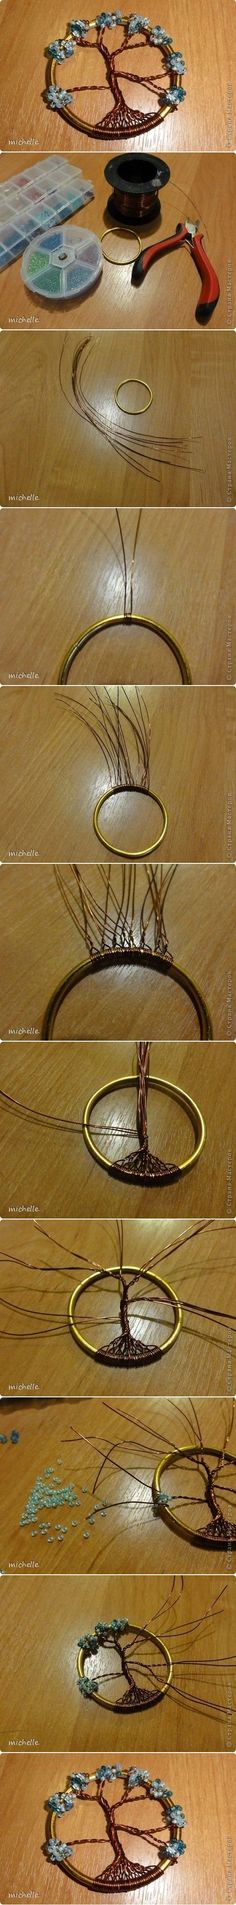 I think I can totally make this! It would be great to add to my collection! DIY Tree of Life. #DIY #Jewelry